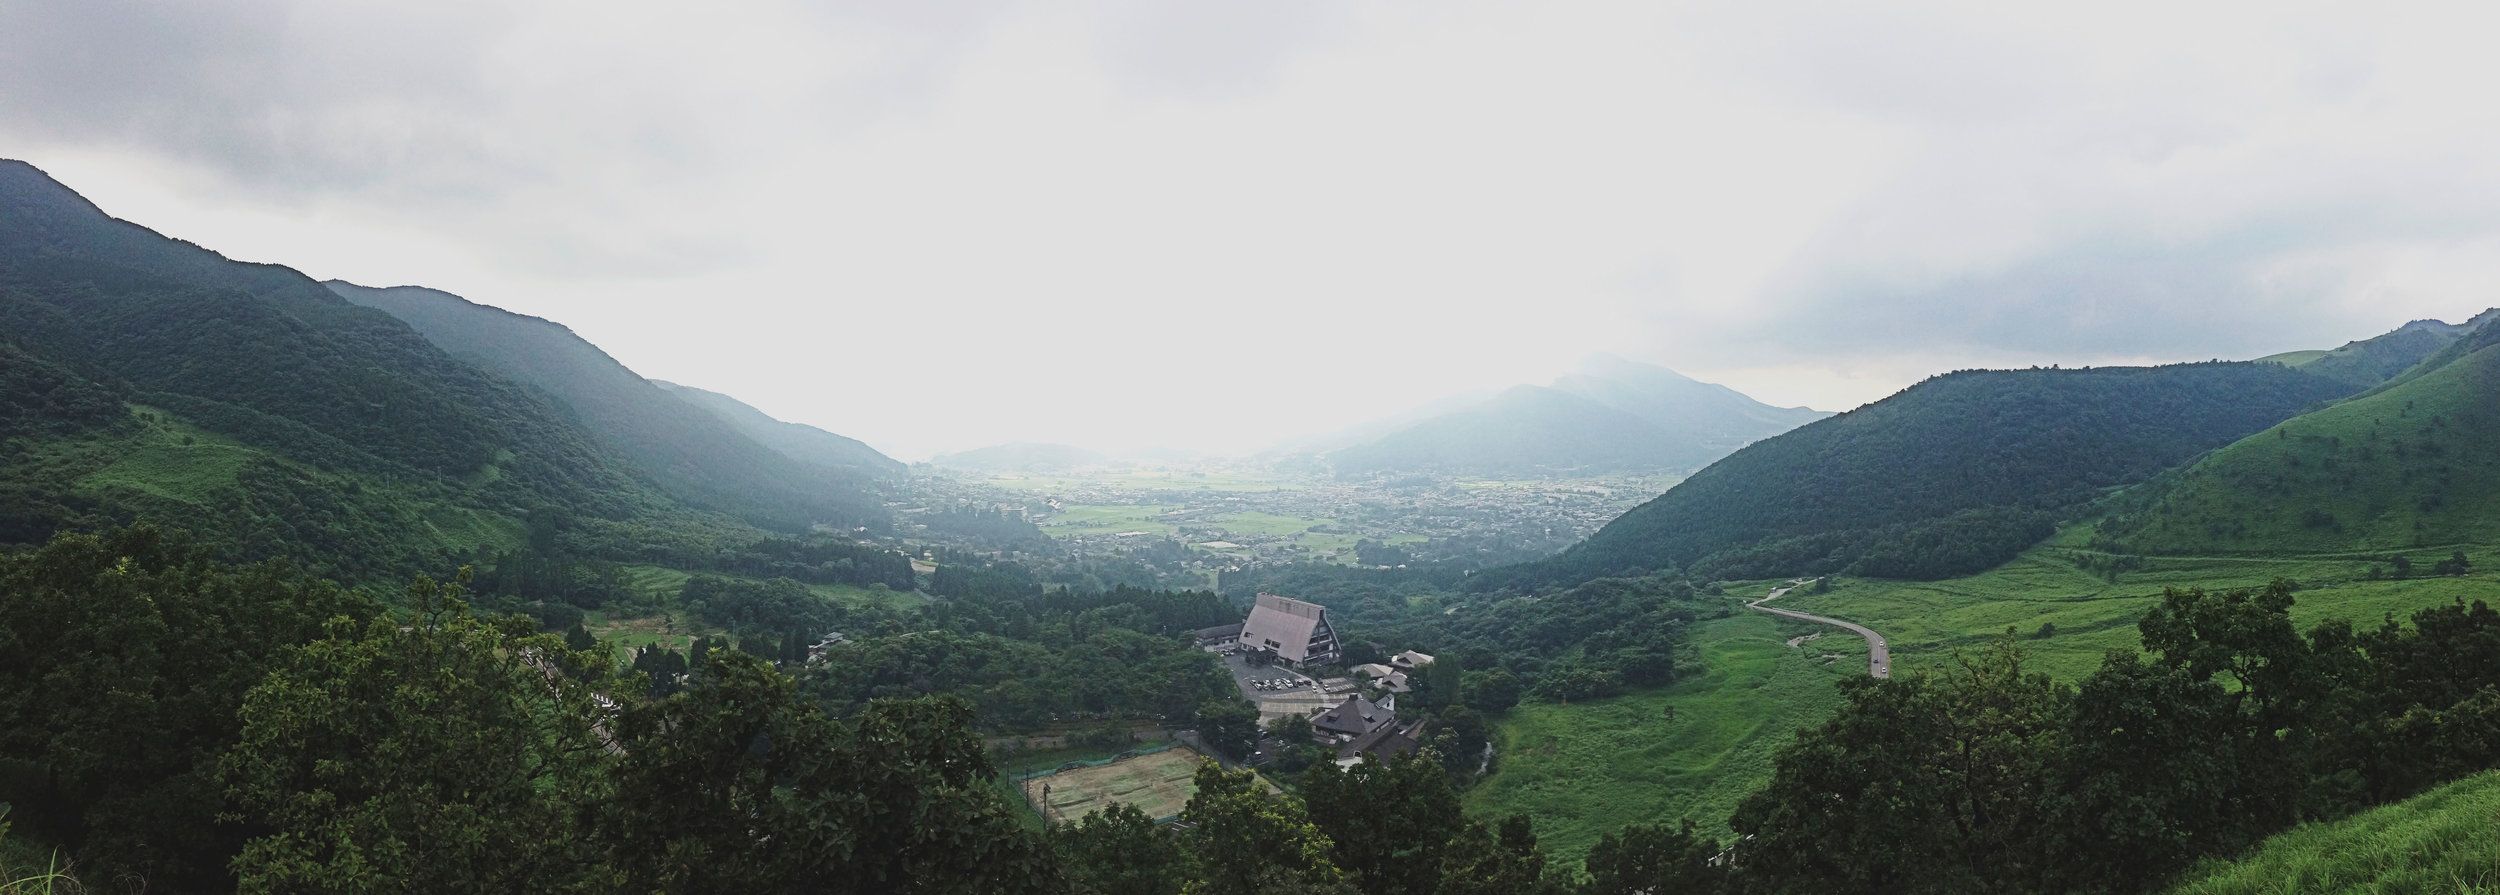 View of Yufuin in Oita from the roadside